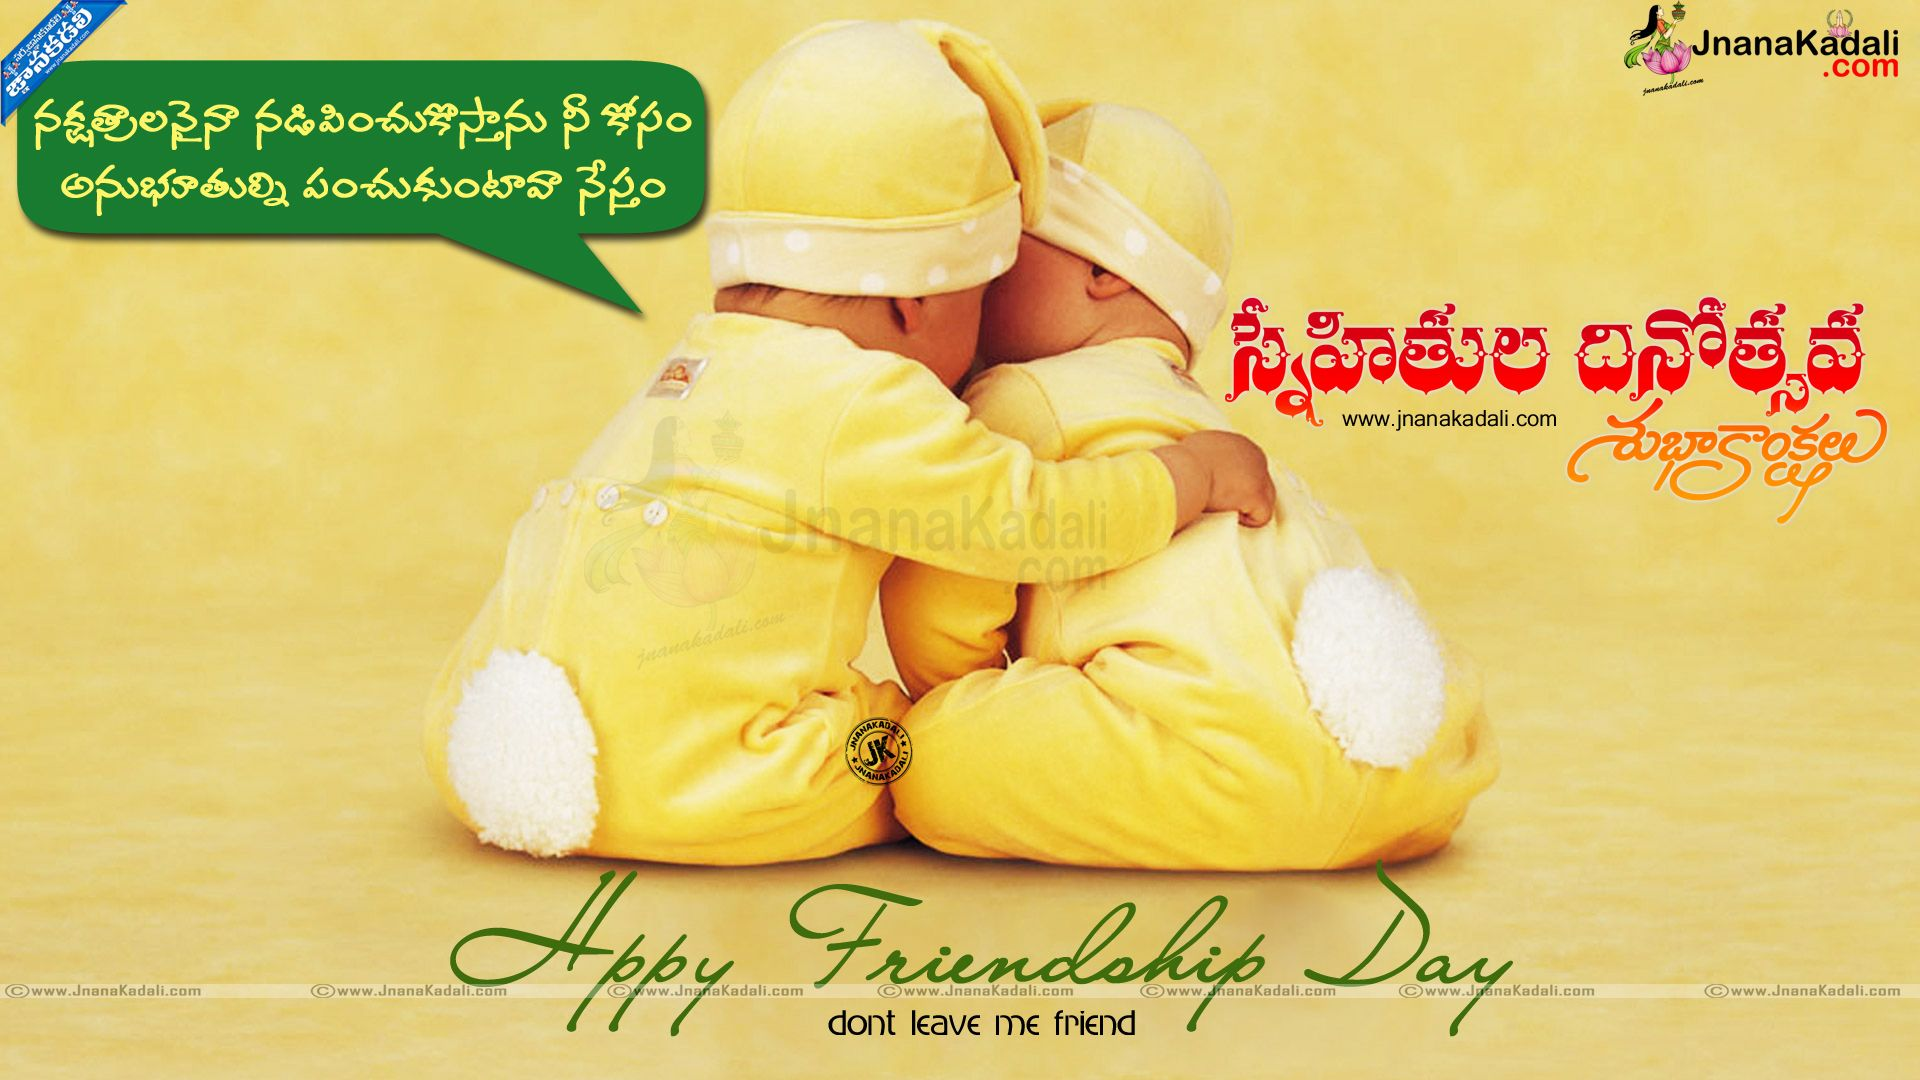 Friendship day telugu quotes wishes greetings images wallpapers friendship day telugu quotes wishes greetings images wallpapers pictures friendship day pictures in telugu friendship day wallpapers in telugu bes kristyandbryce Image collections